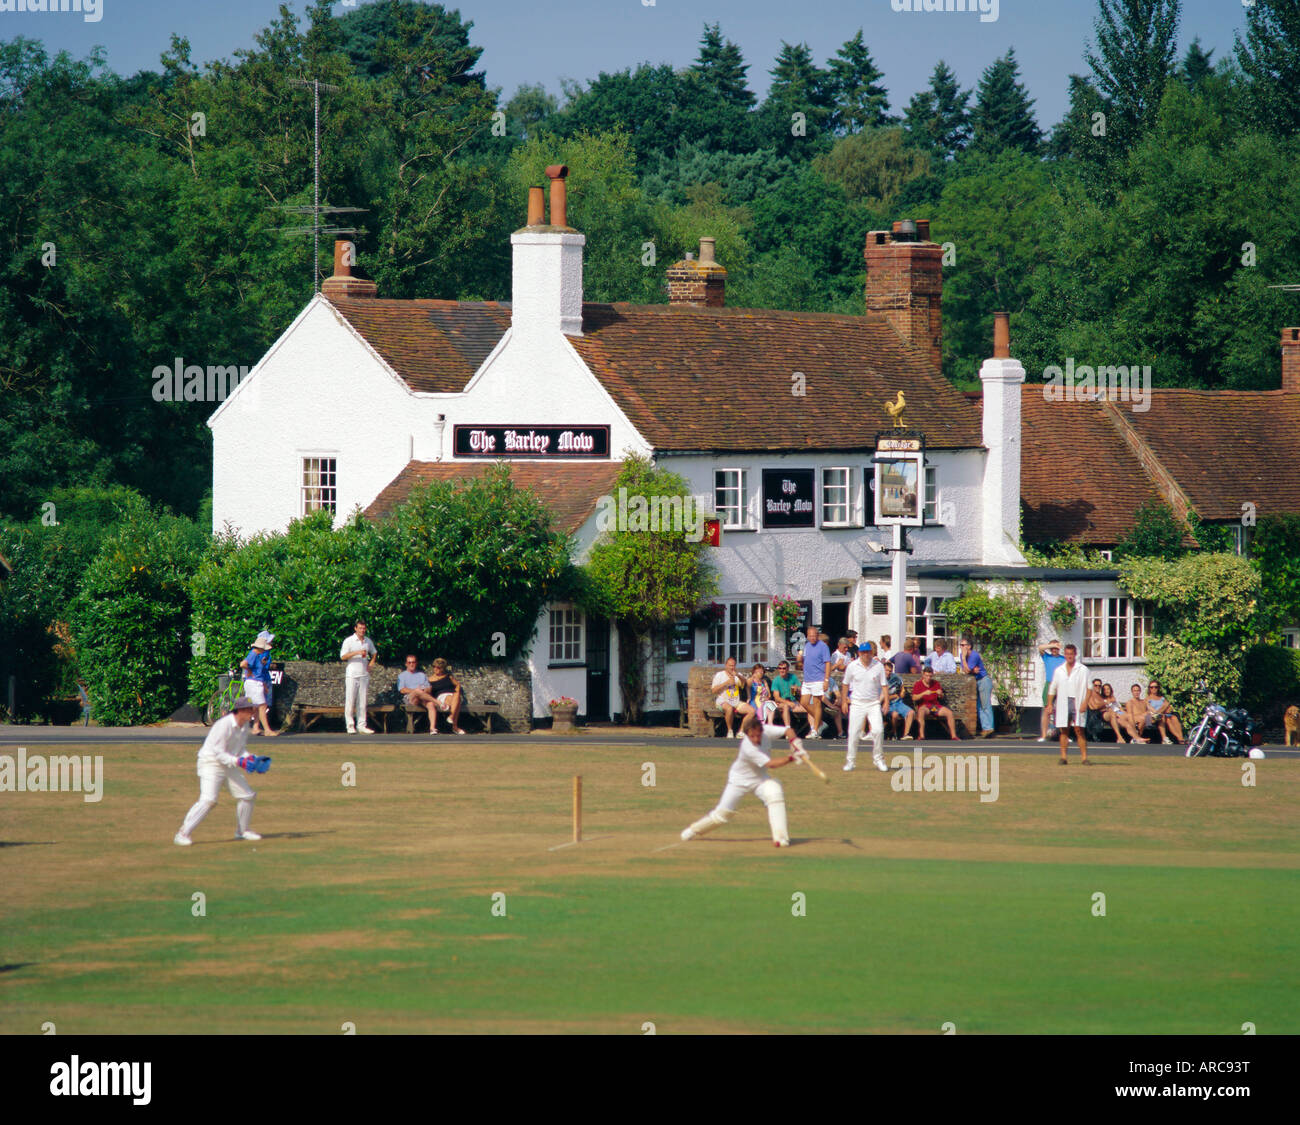 Village green cricket, Tilford, Surrey, England, UK - Stock Image